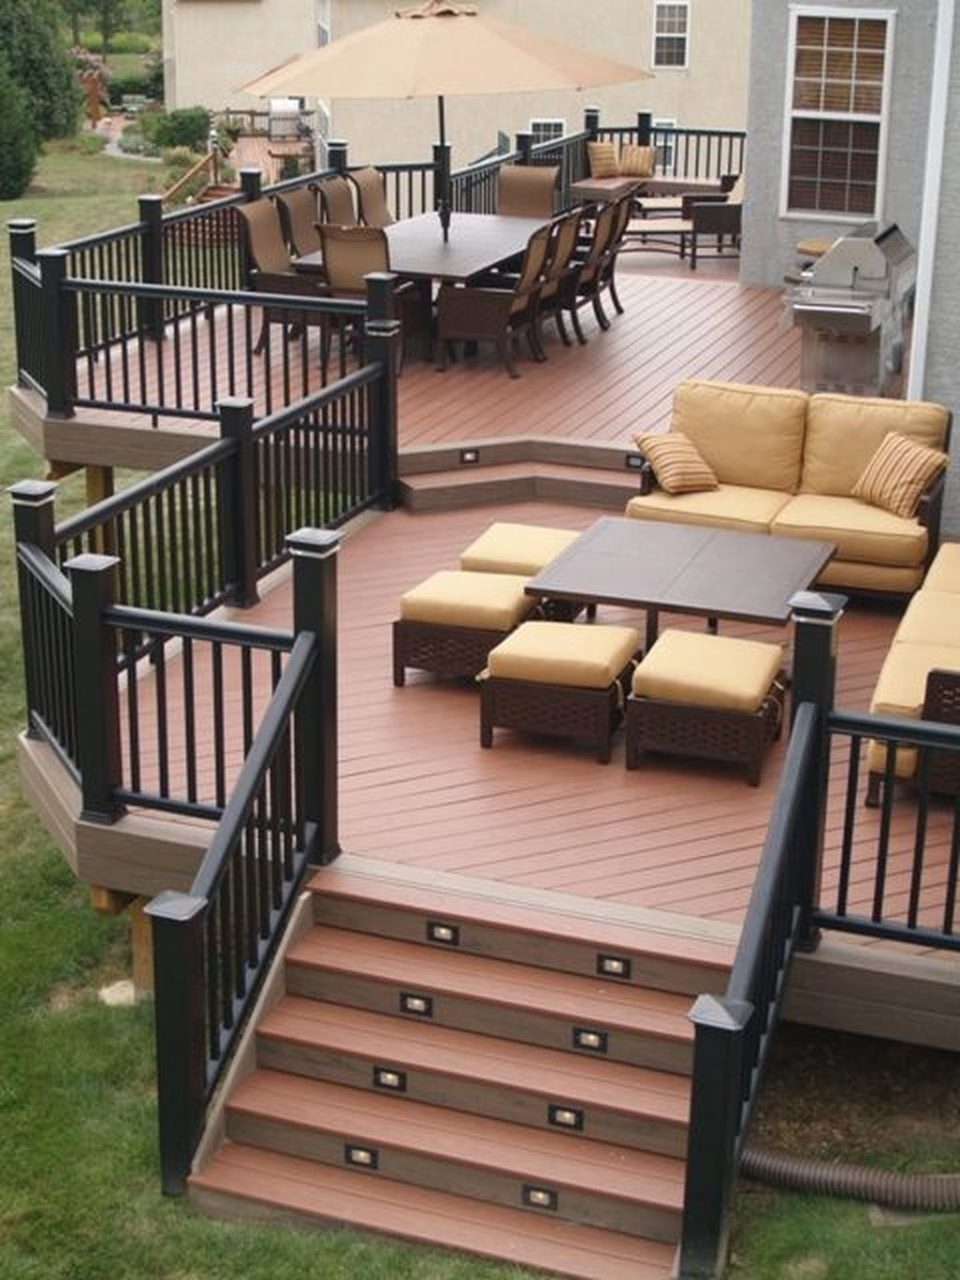 43 Cozy Backyard Patio Deck Design Decoration Ideas Backyard